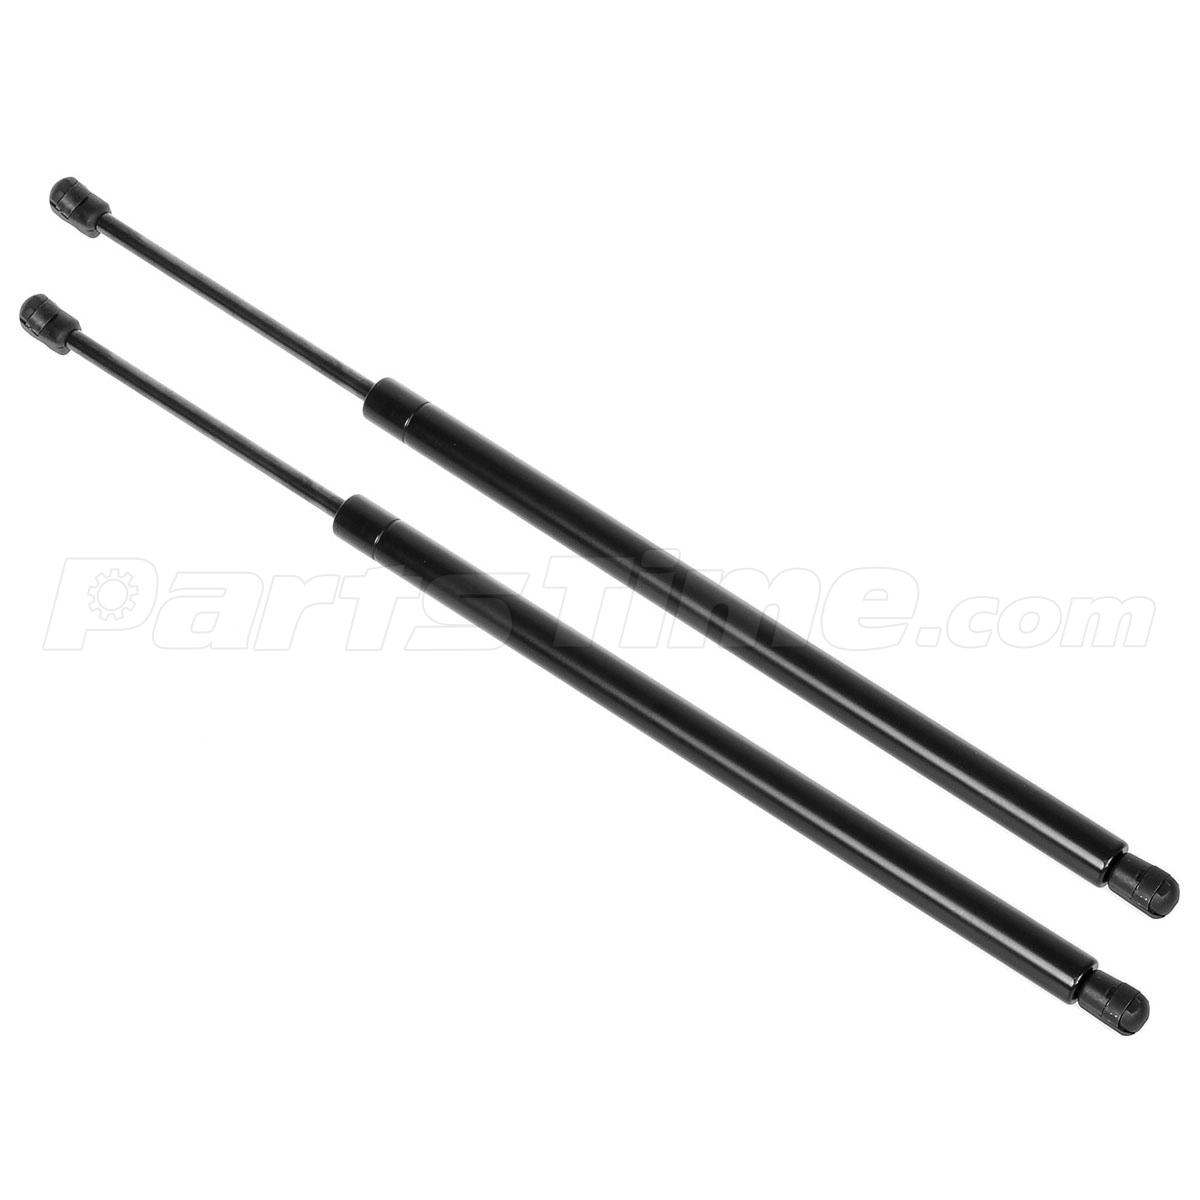 1pair Tailgate Hatch Lift Support For Chevrolet Trailblazer Envoy Ascende Xl Ext